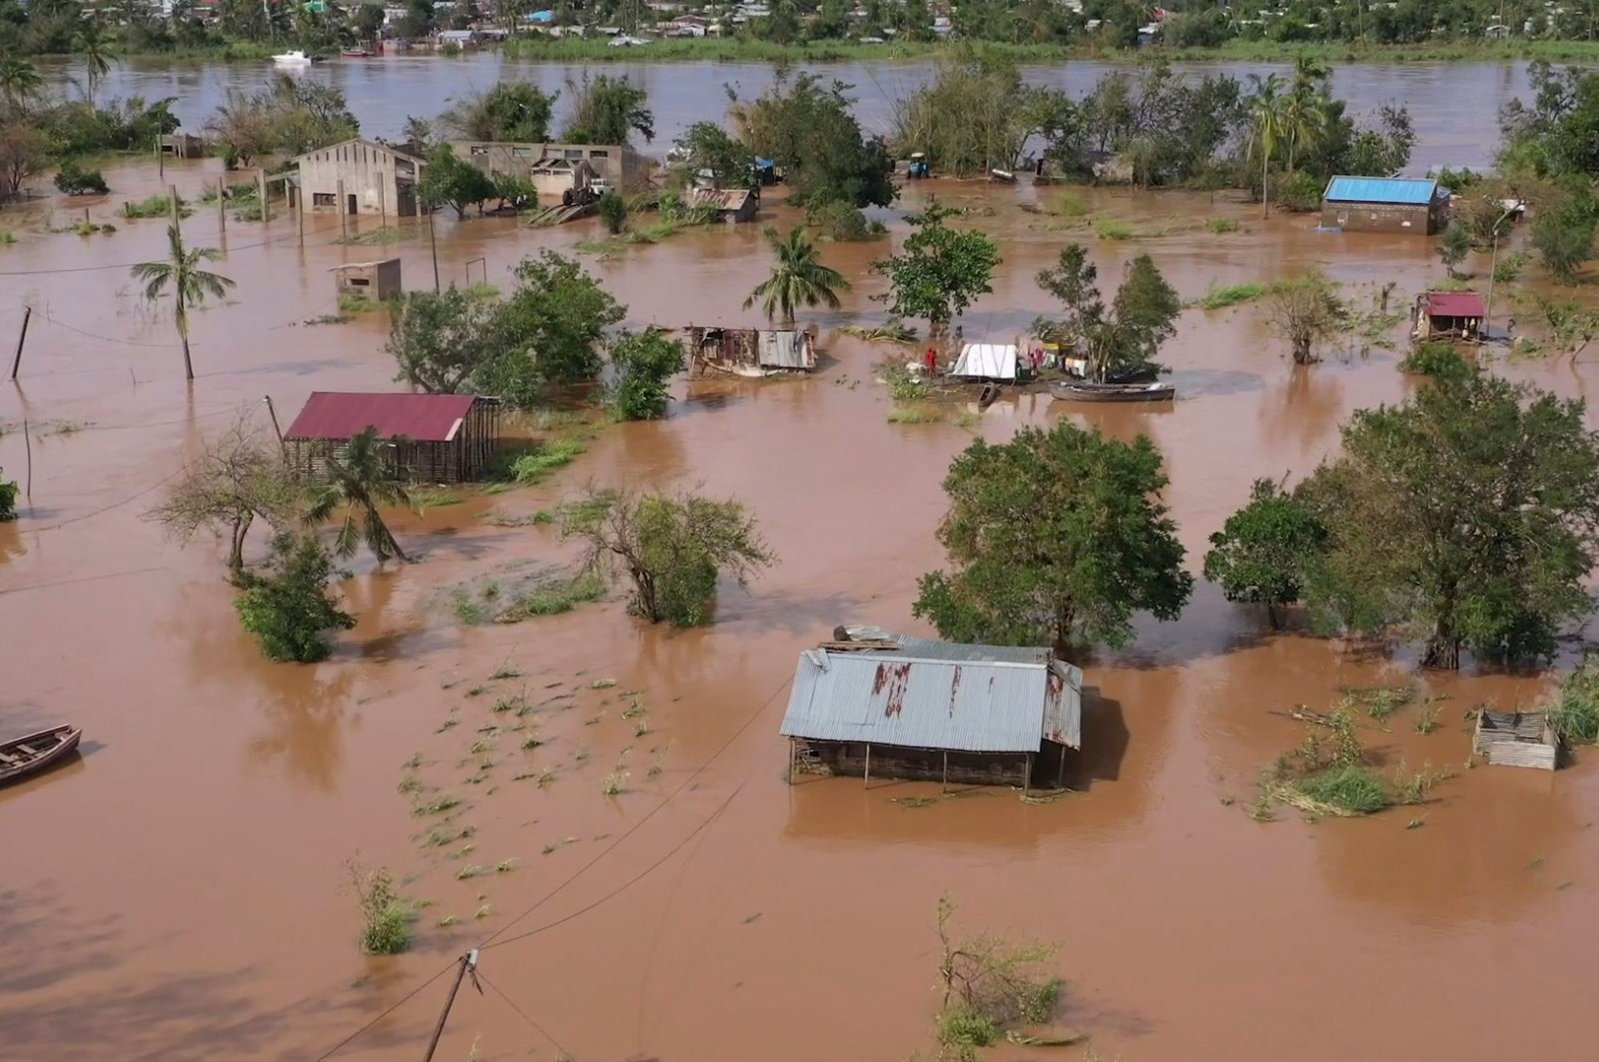 Widespread flooding in the Buzi district of Mozambique after the landfall of Cyclone Eloise, Jan. 24, 2020. (AFP Photo)